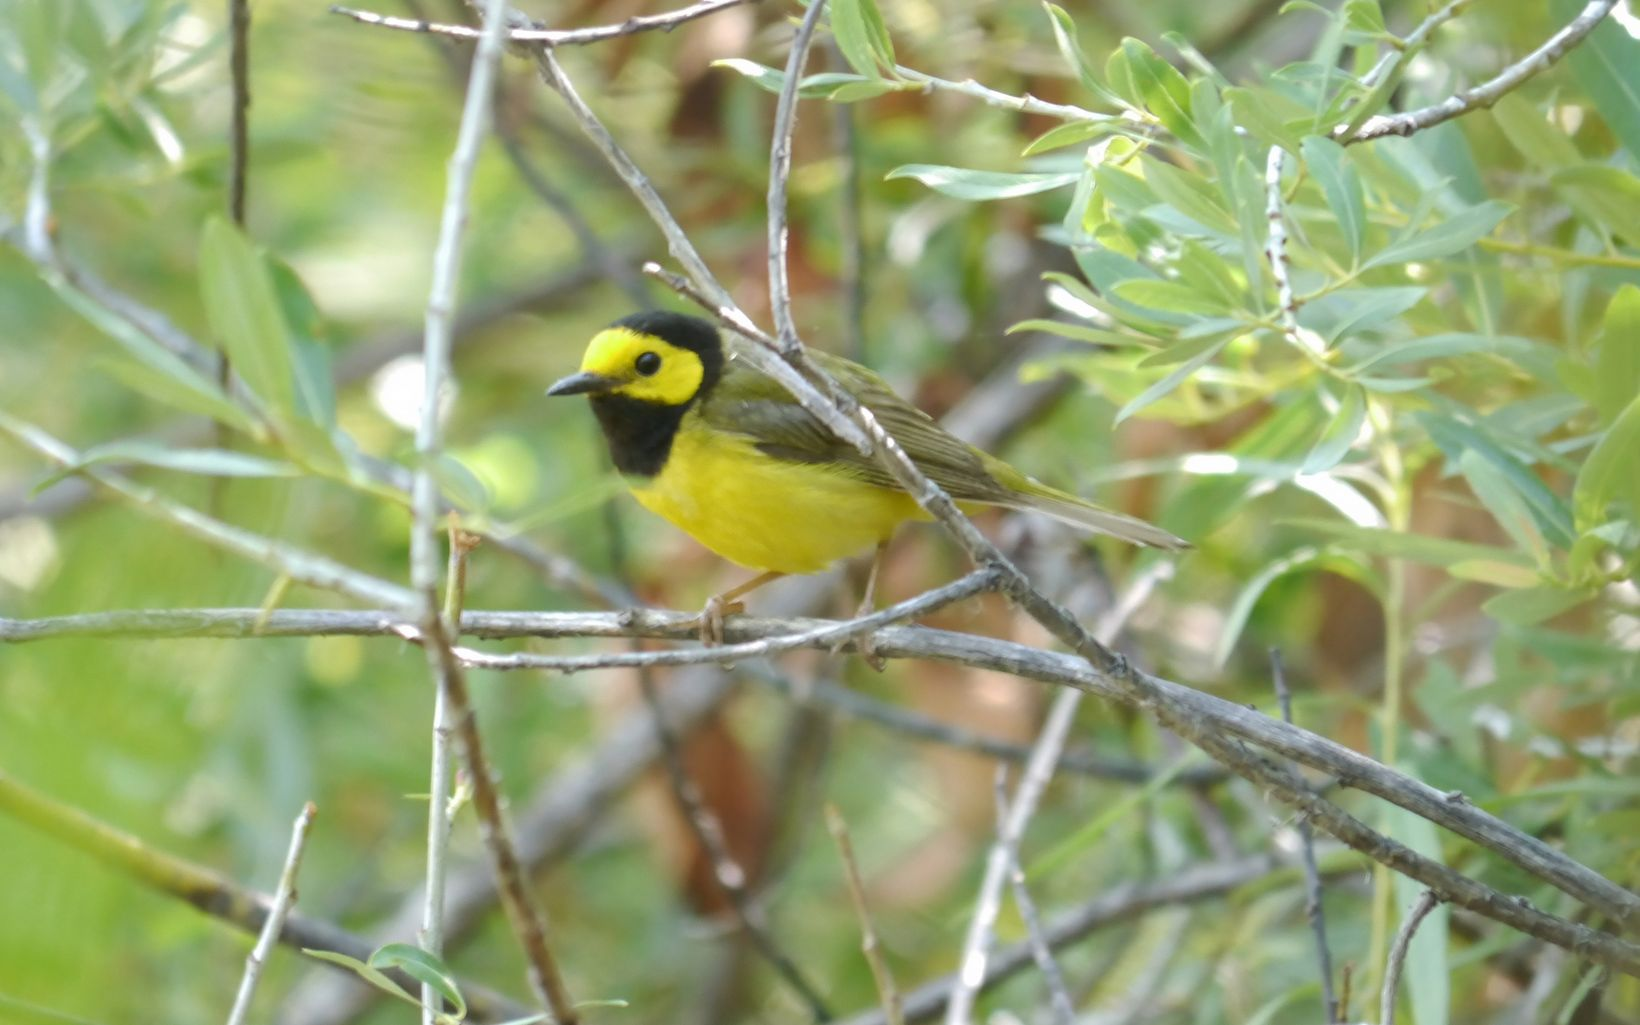 Santa Fe Canyon Preserve is a great place for birding!